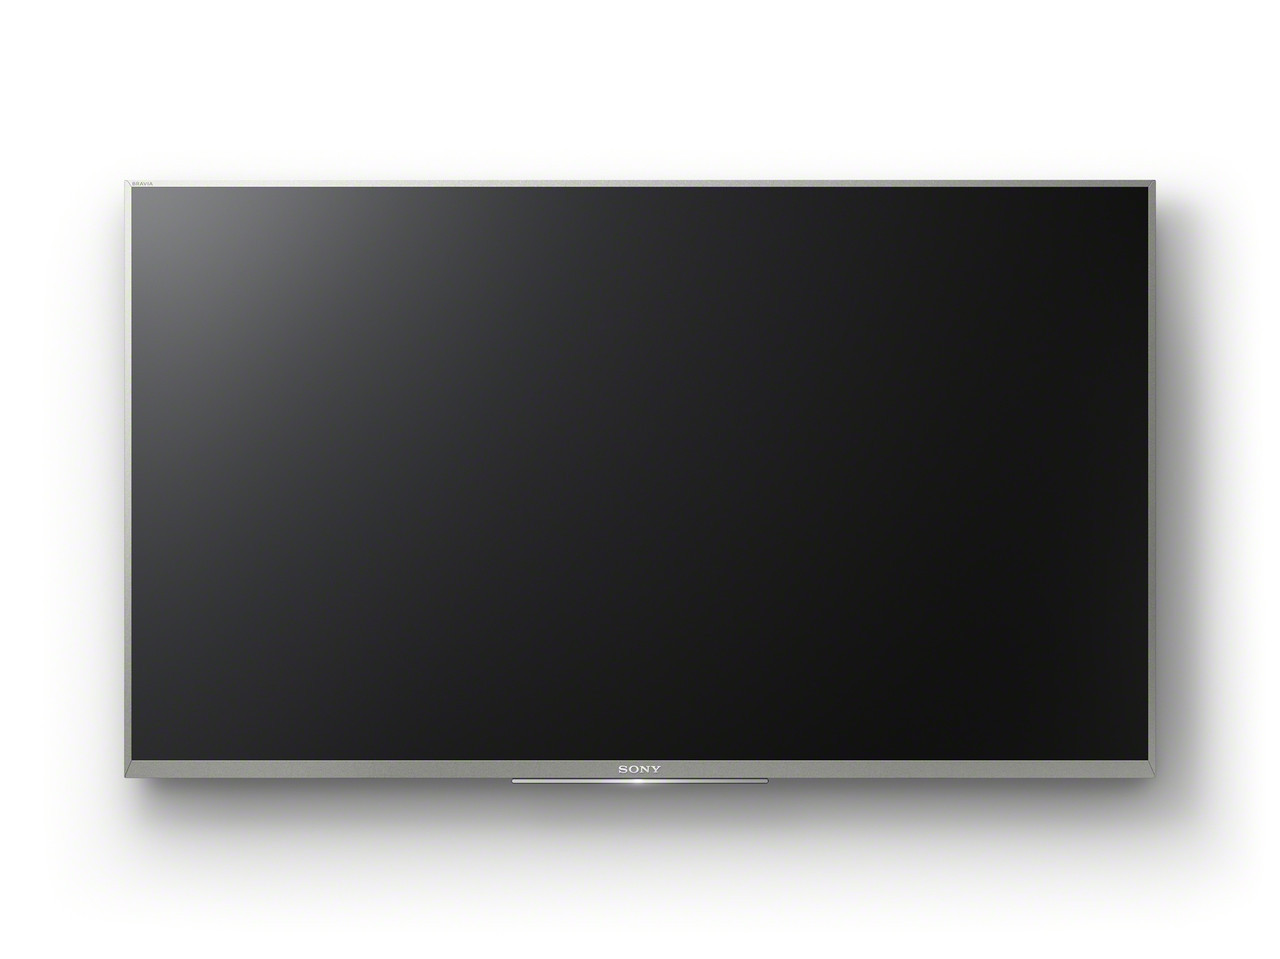 "ТЕЛЕВИЗОР SONY TV FULL HD 24""  USB + SD + HDMI (12V И 220V)"